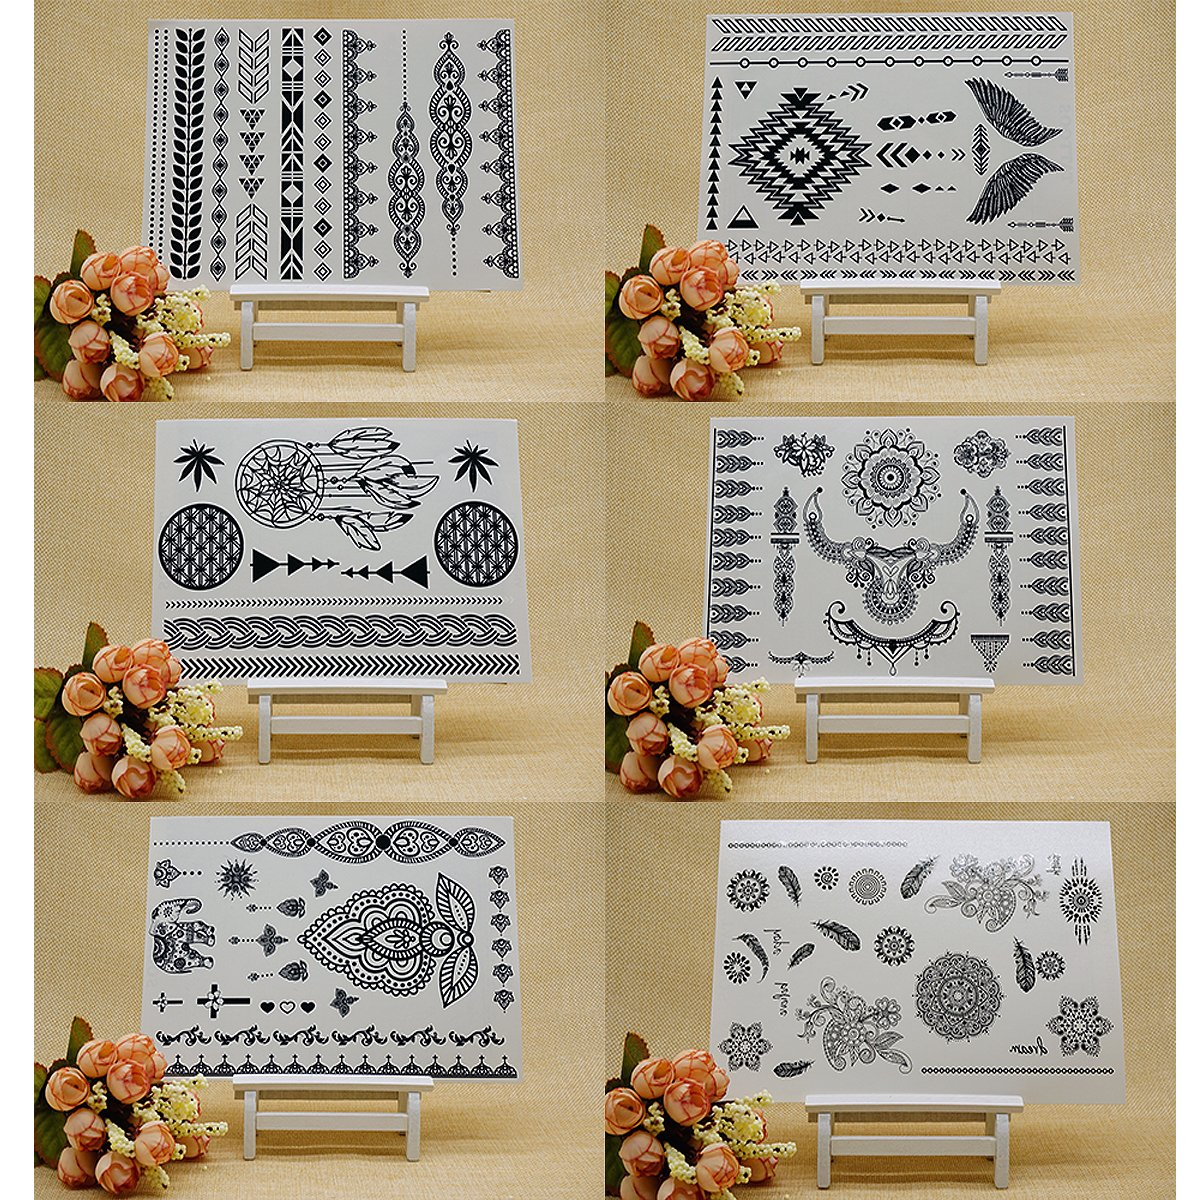 GIFT!!Tastto 6 Sheets Henna Body Paints Temporary Tattoos Black Lace Stickers for Girls and Women with GIFT by Tastto (Image #1)